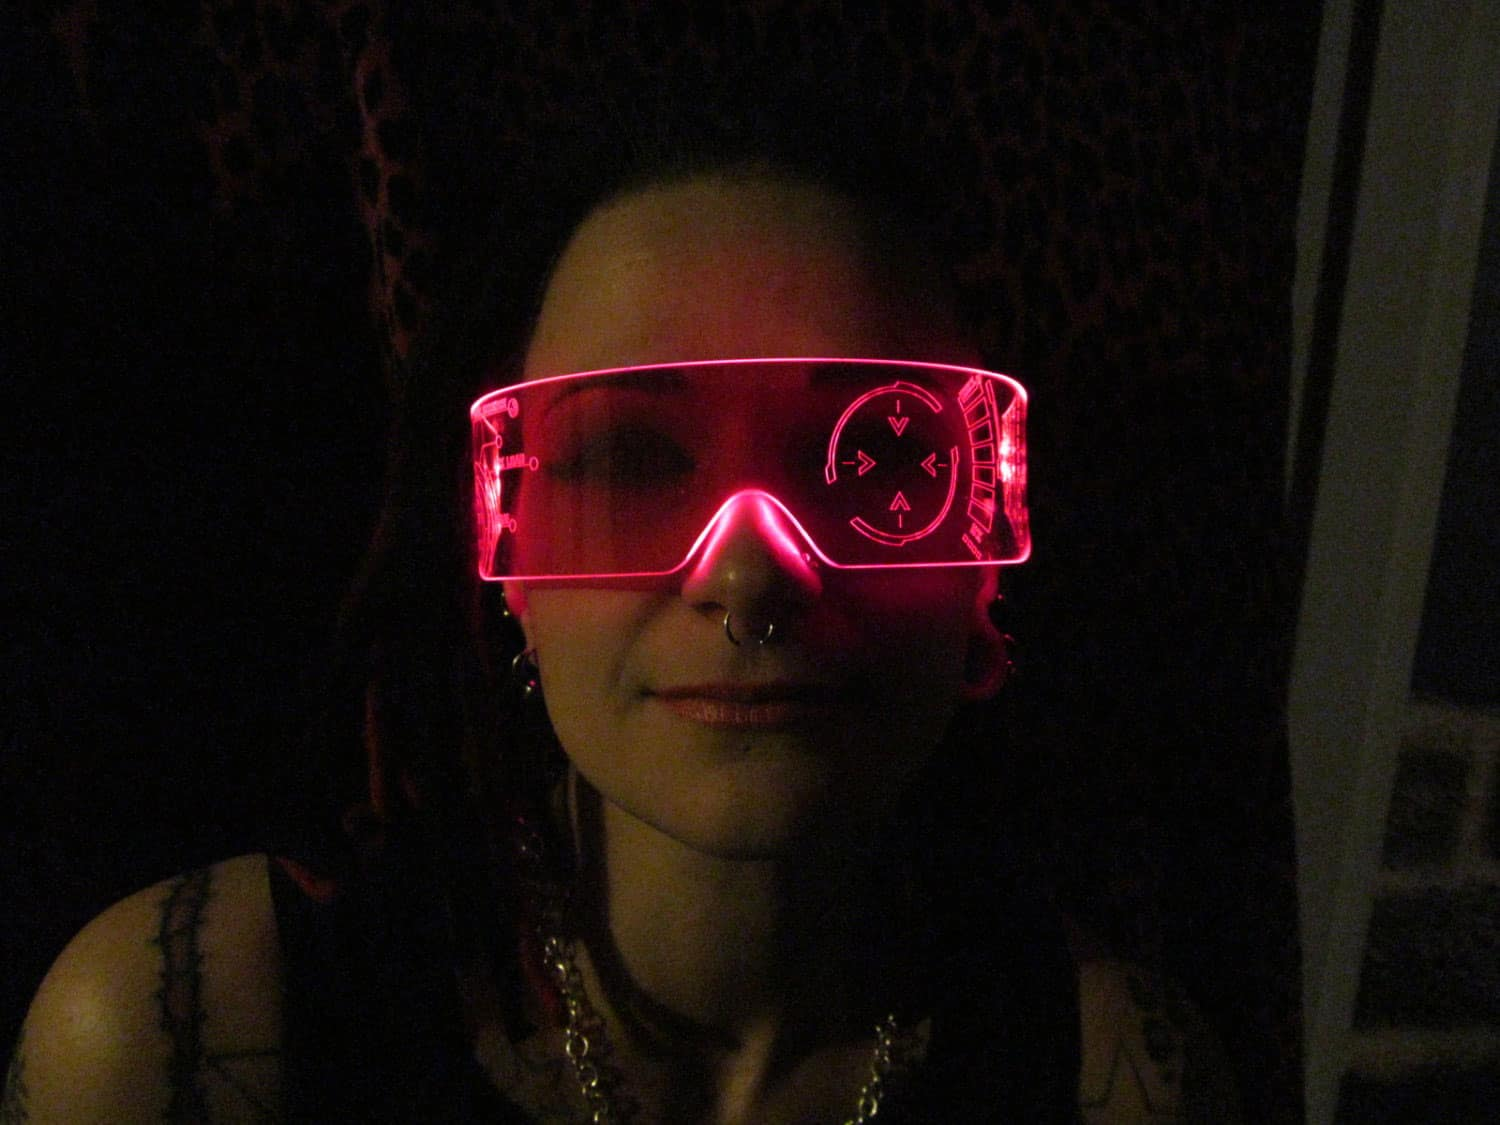 Illumination Cyber Wear Illuminated Cyber Goth Visor Like Iron Man